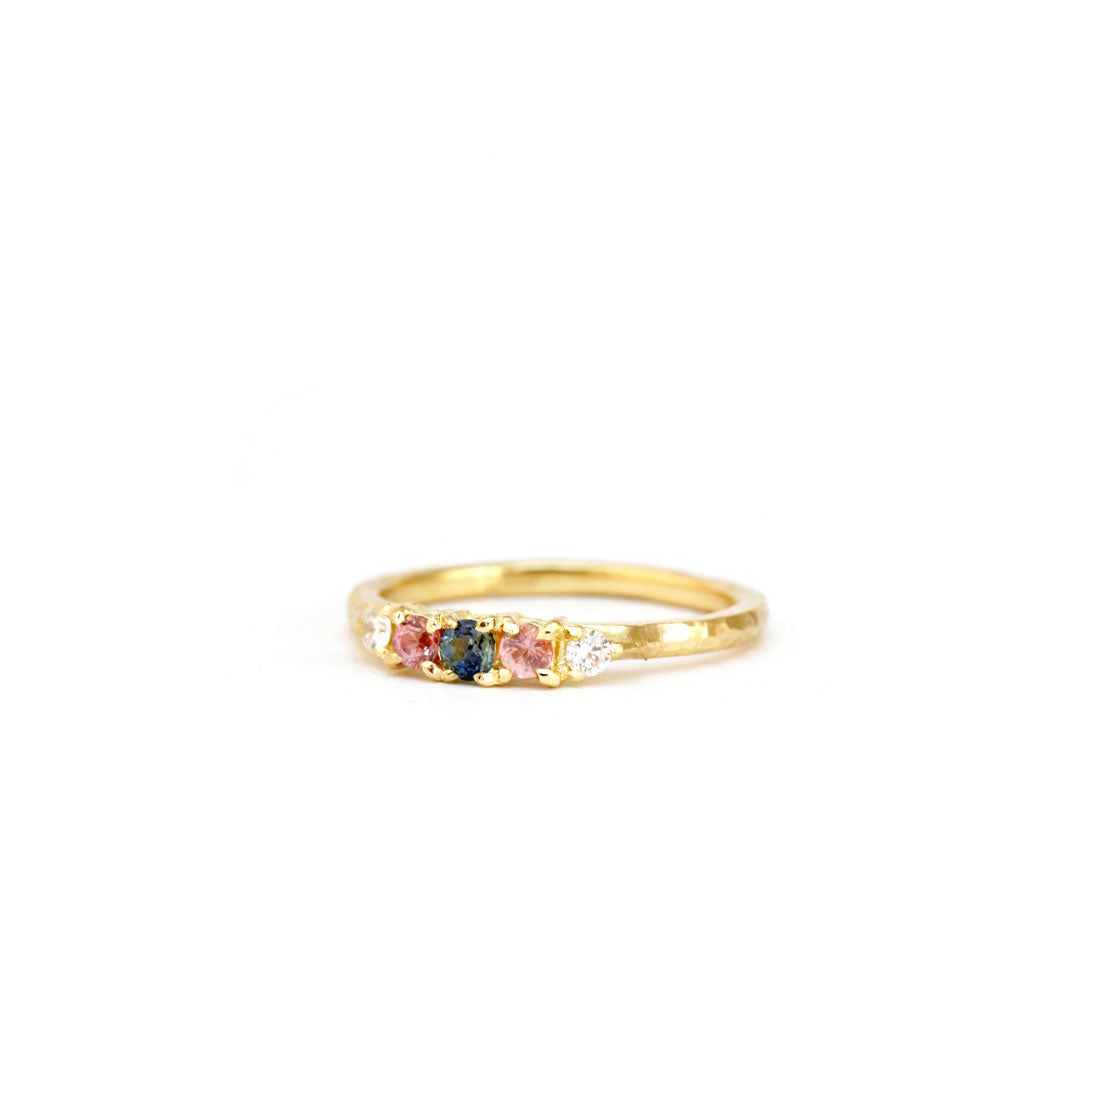 Sapphire engagement ring in yellow gold with pink sapphires